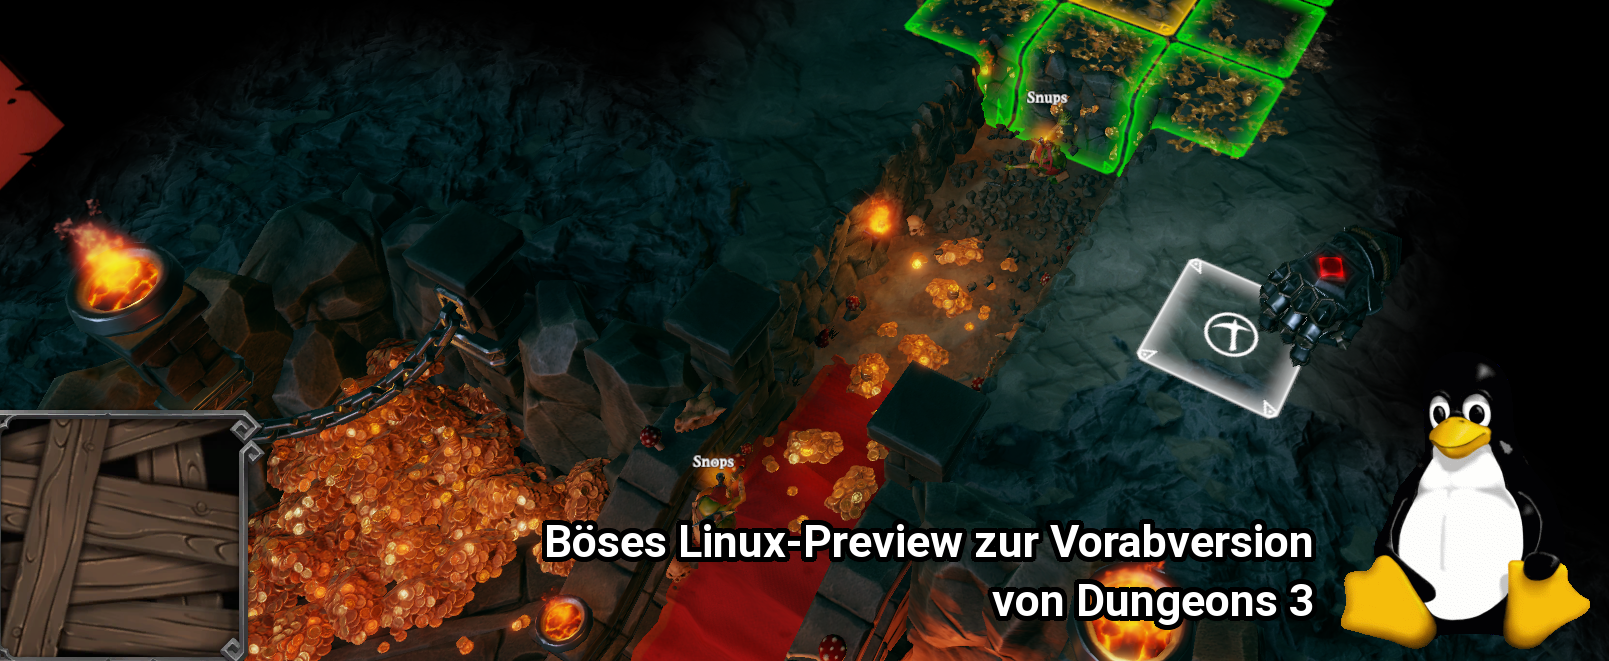 https://www.holarse-linuxgaming.de/sites/default/files/2017-10-03-1/dungeons3_preview_teaser.png